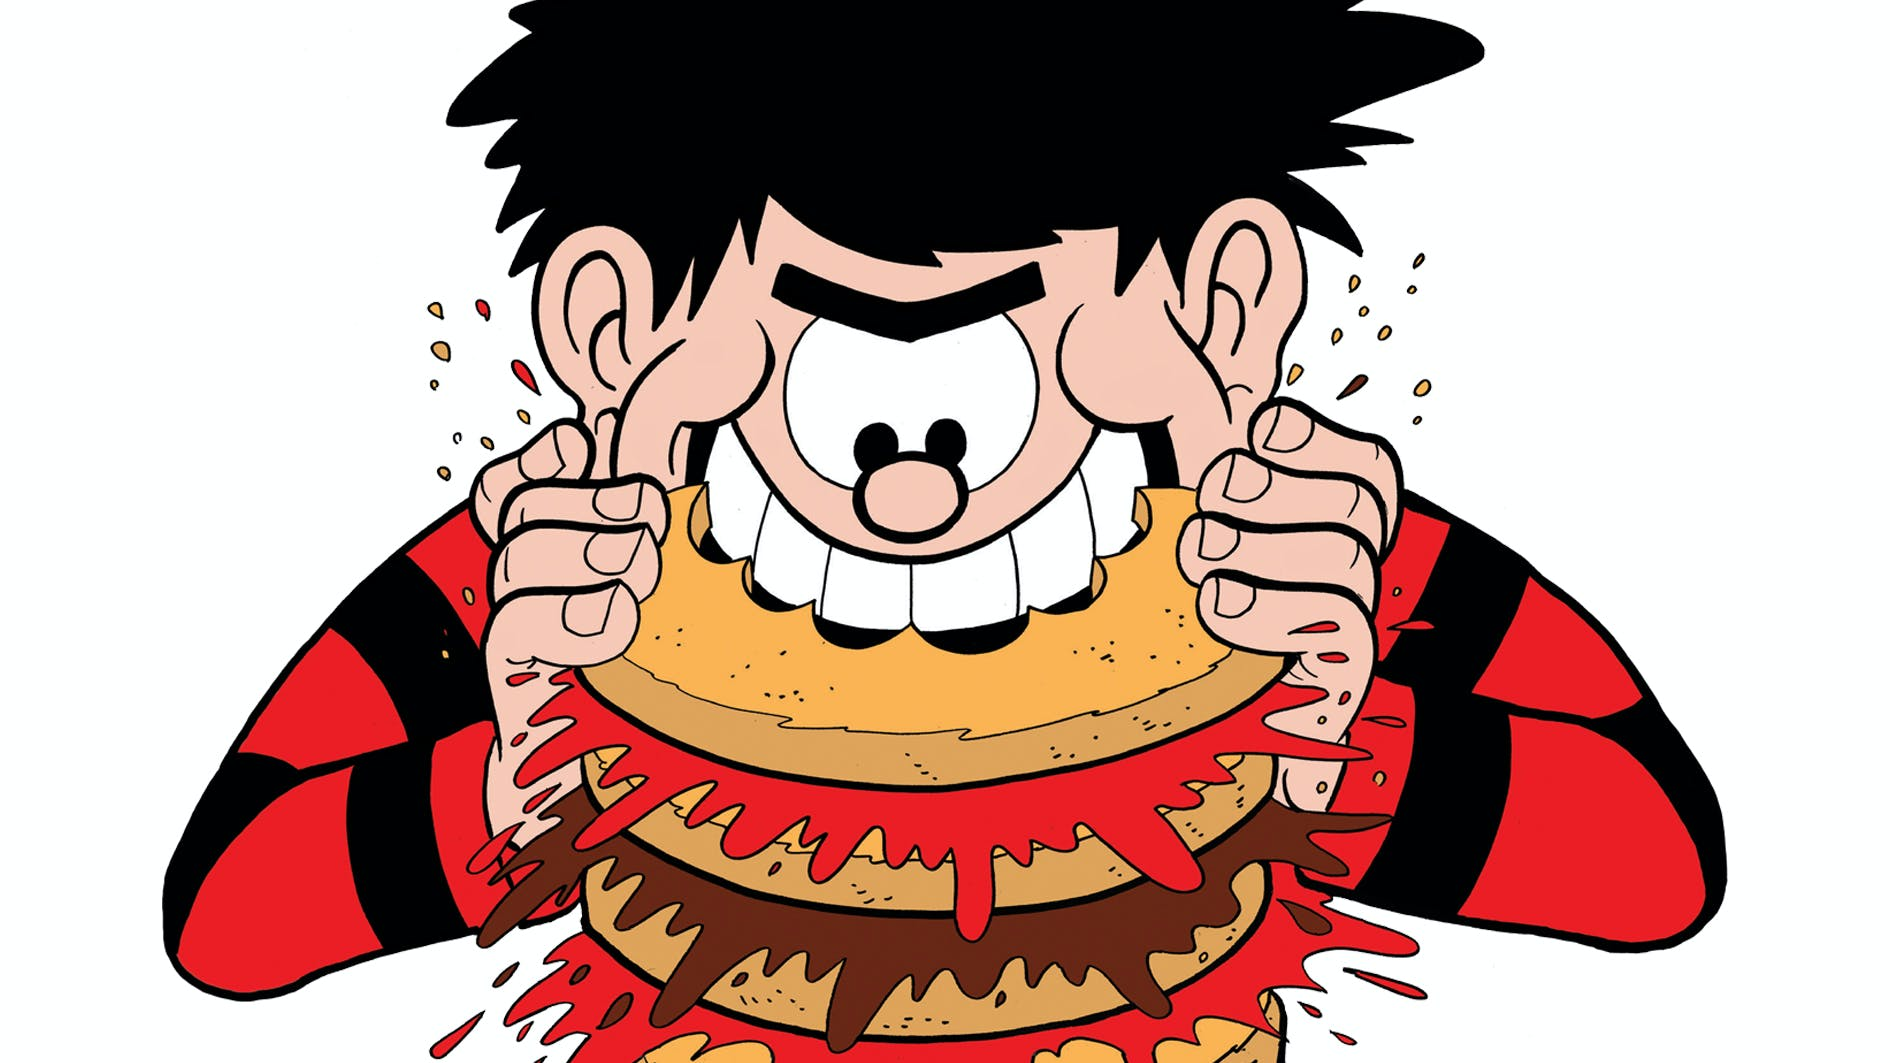 Dennis the Menace eating a burger